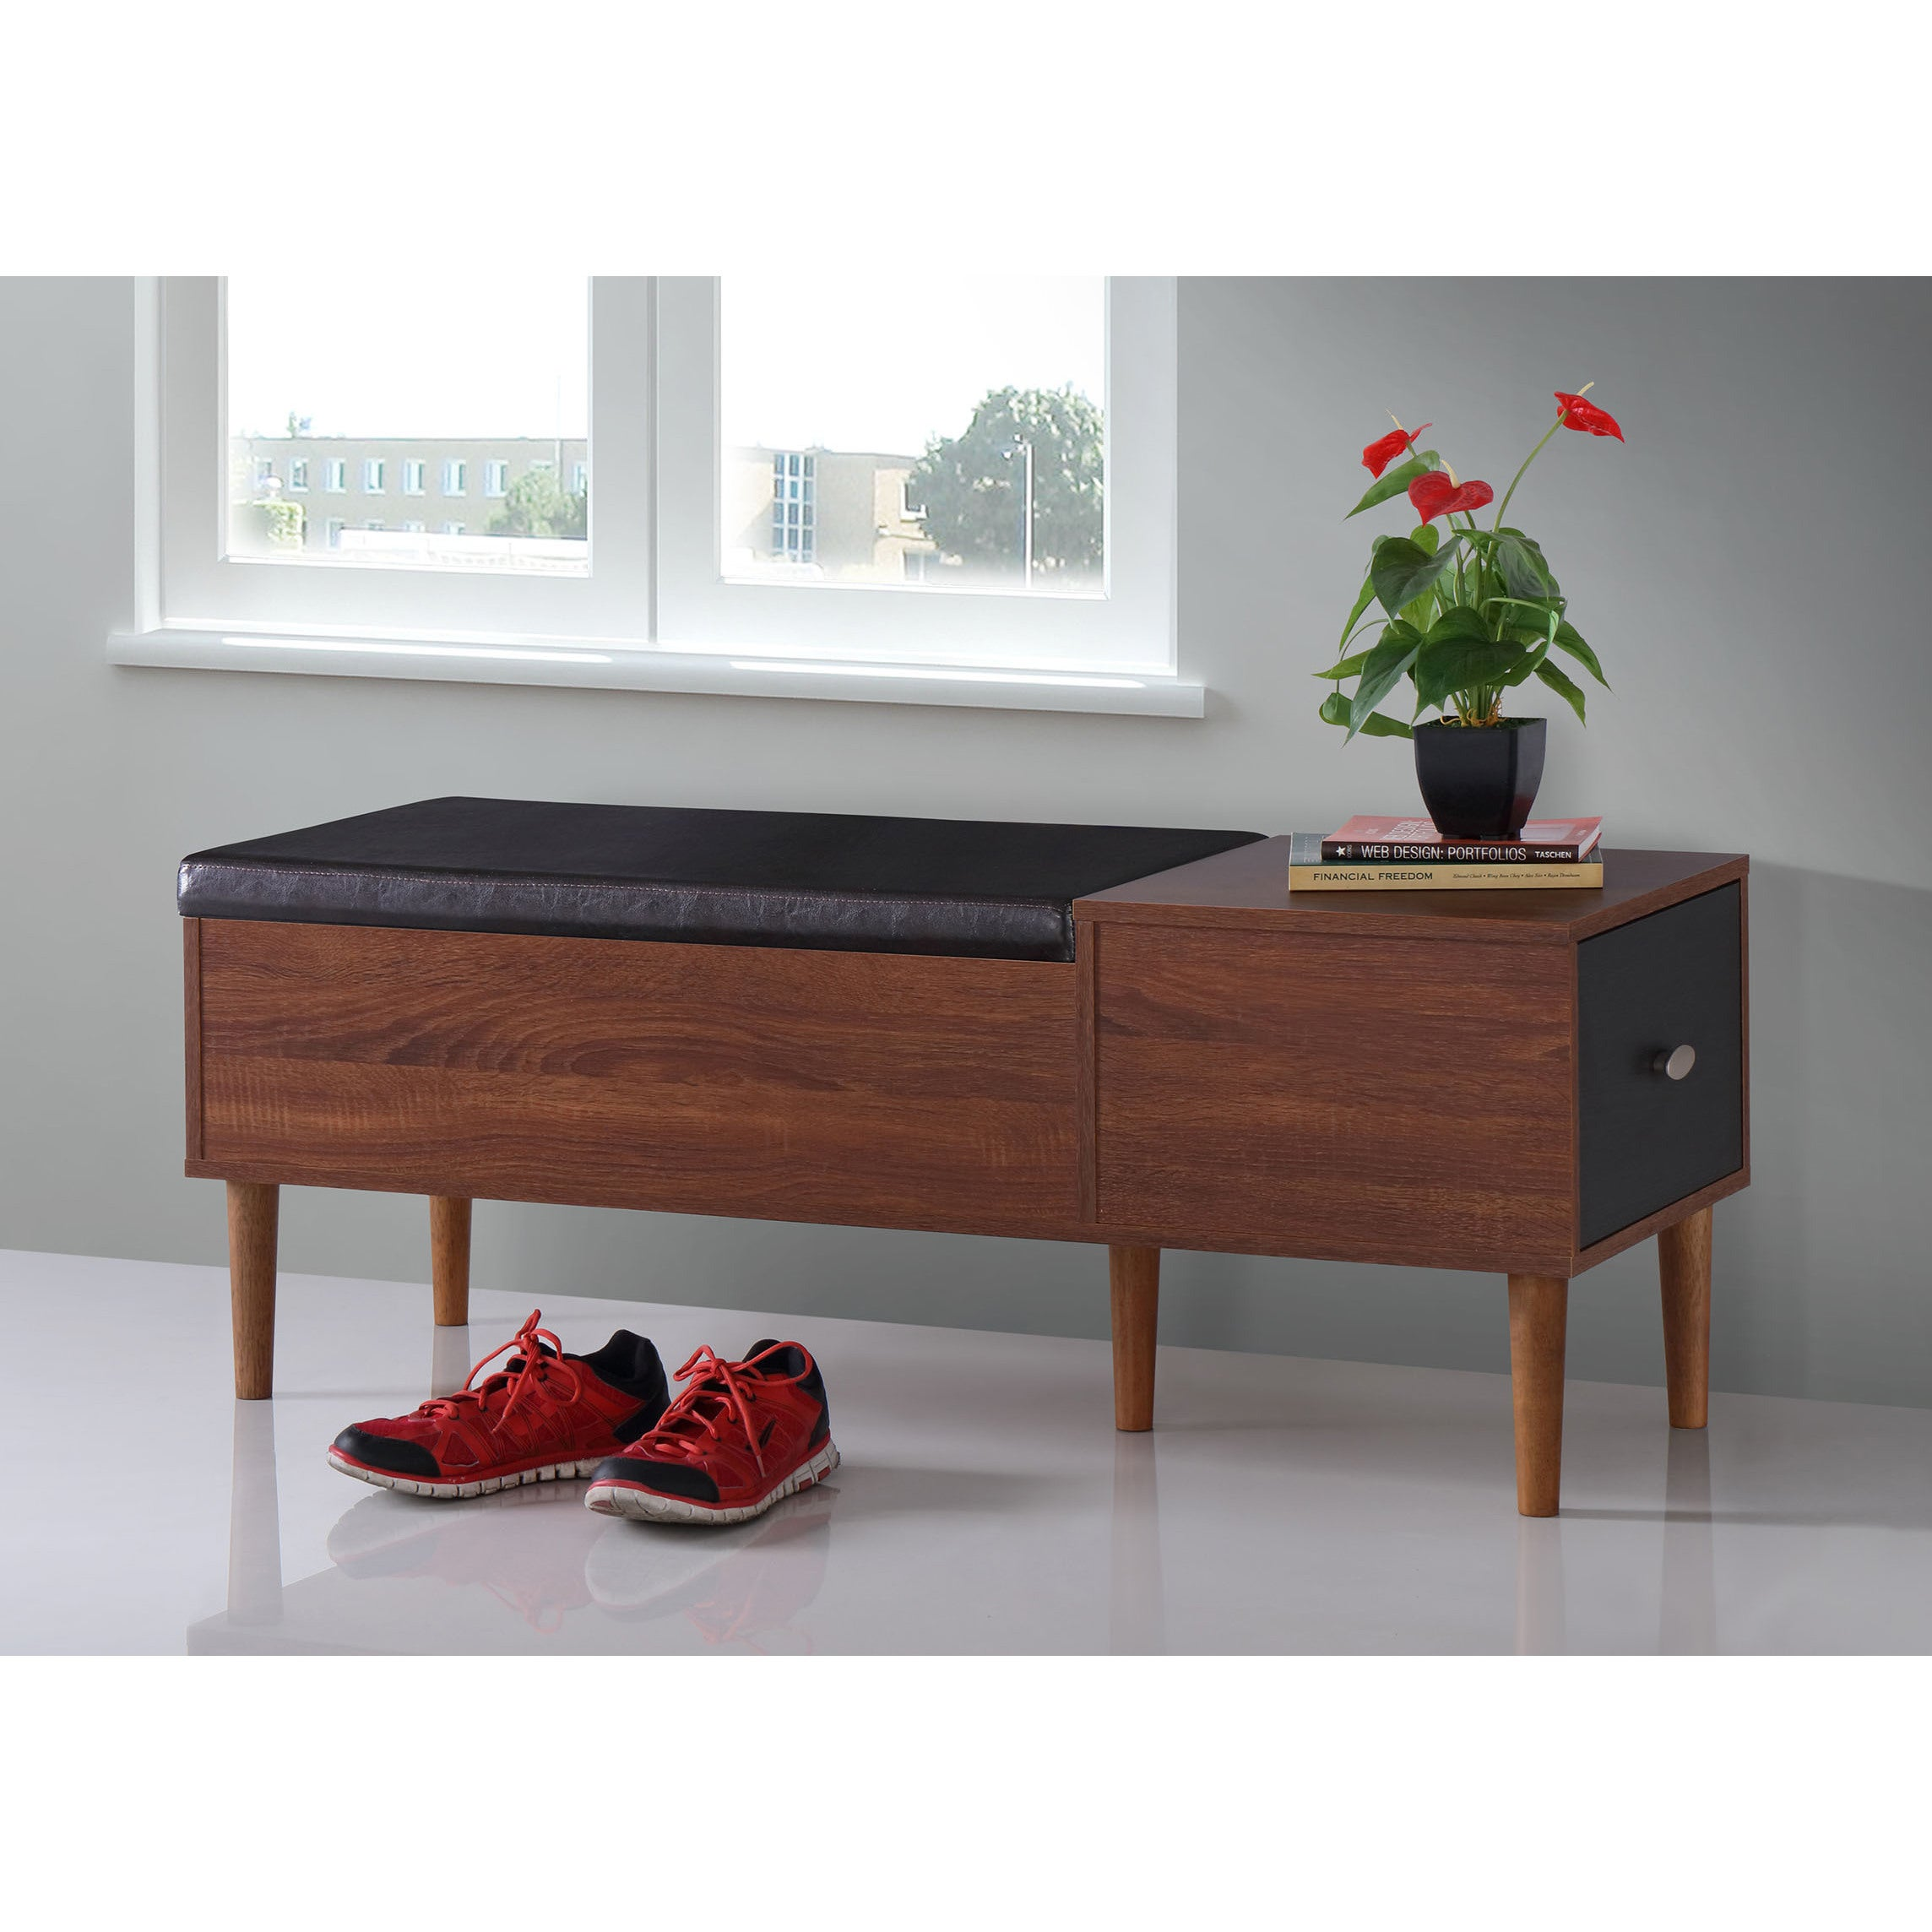 midcentury drawer shoe storage bench by baxton studio  free  - midcentury drawer shoe storage bench by baxton studio